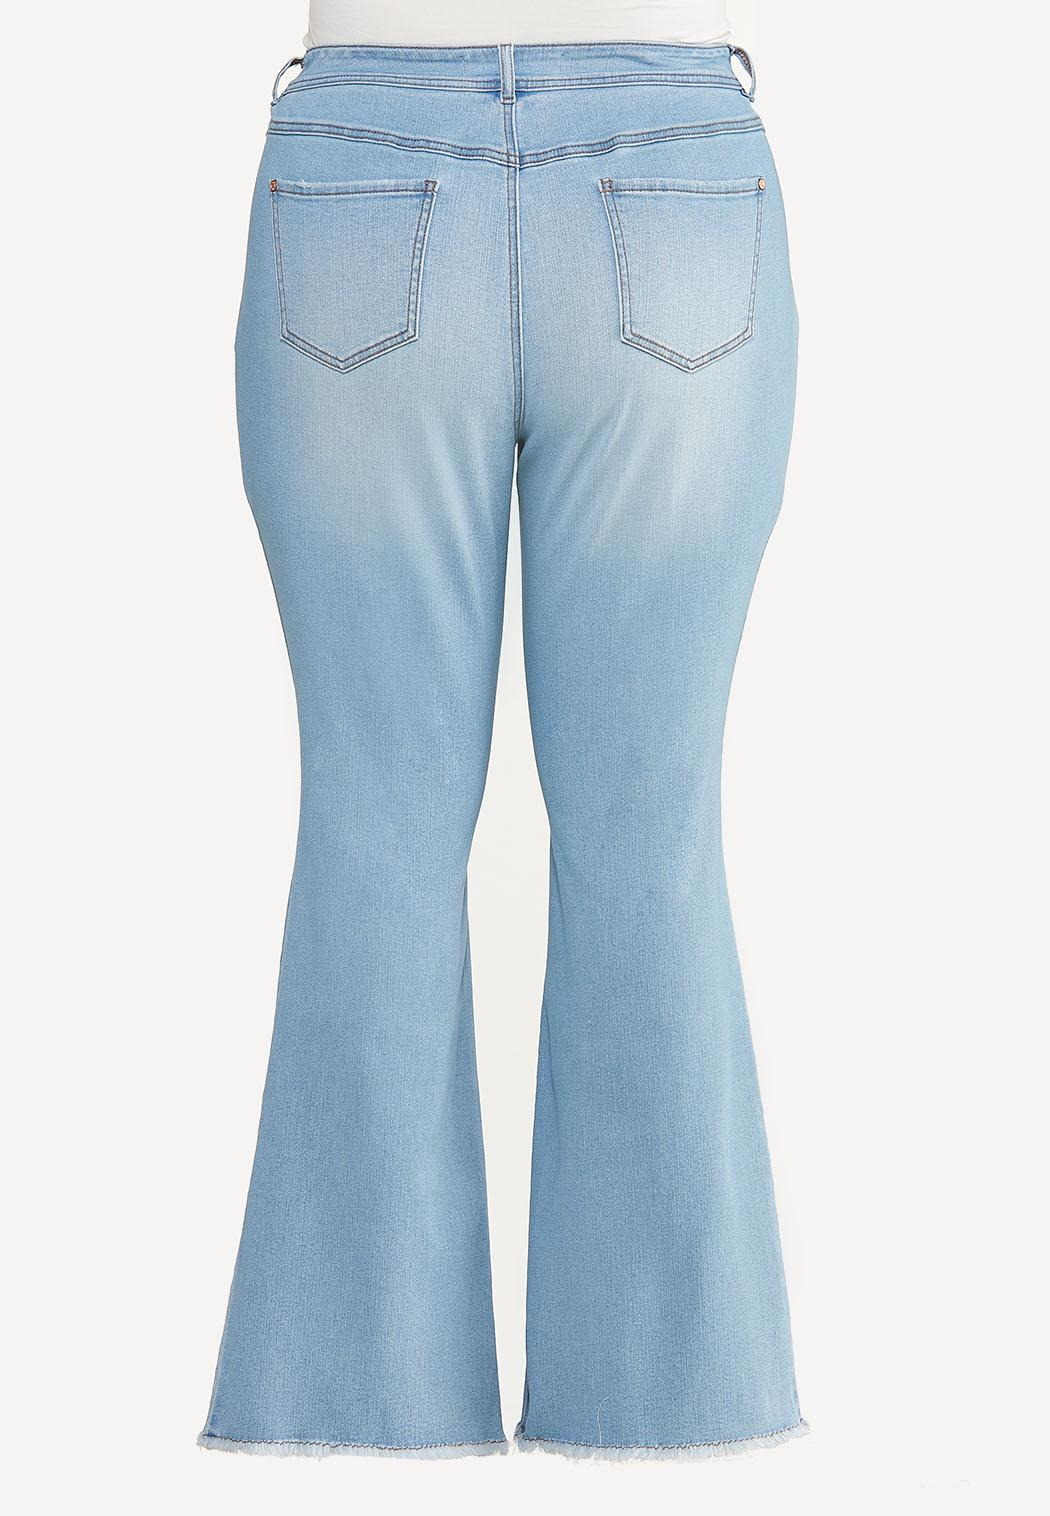 Plus Size High Rise Flare Jeans (Item #44596832)